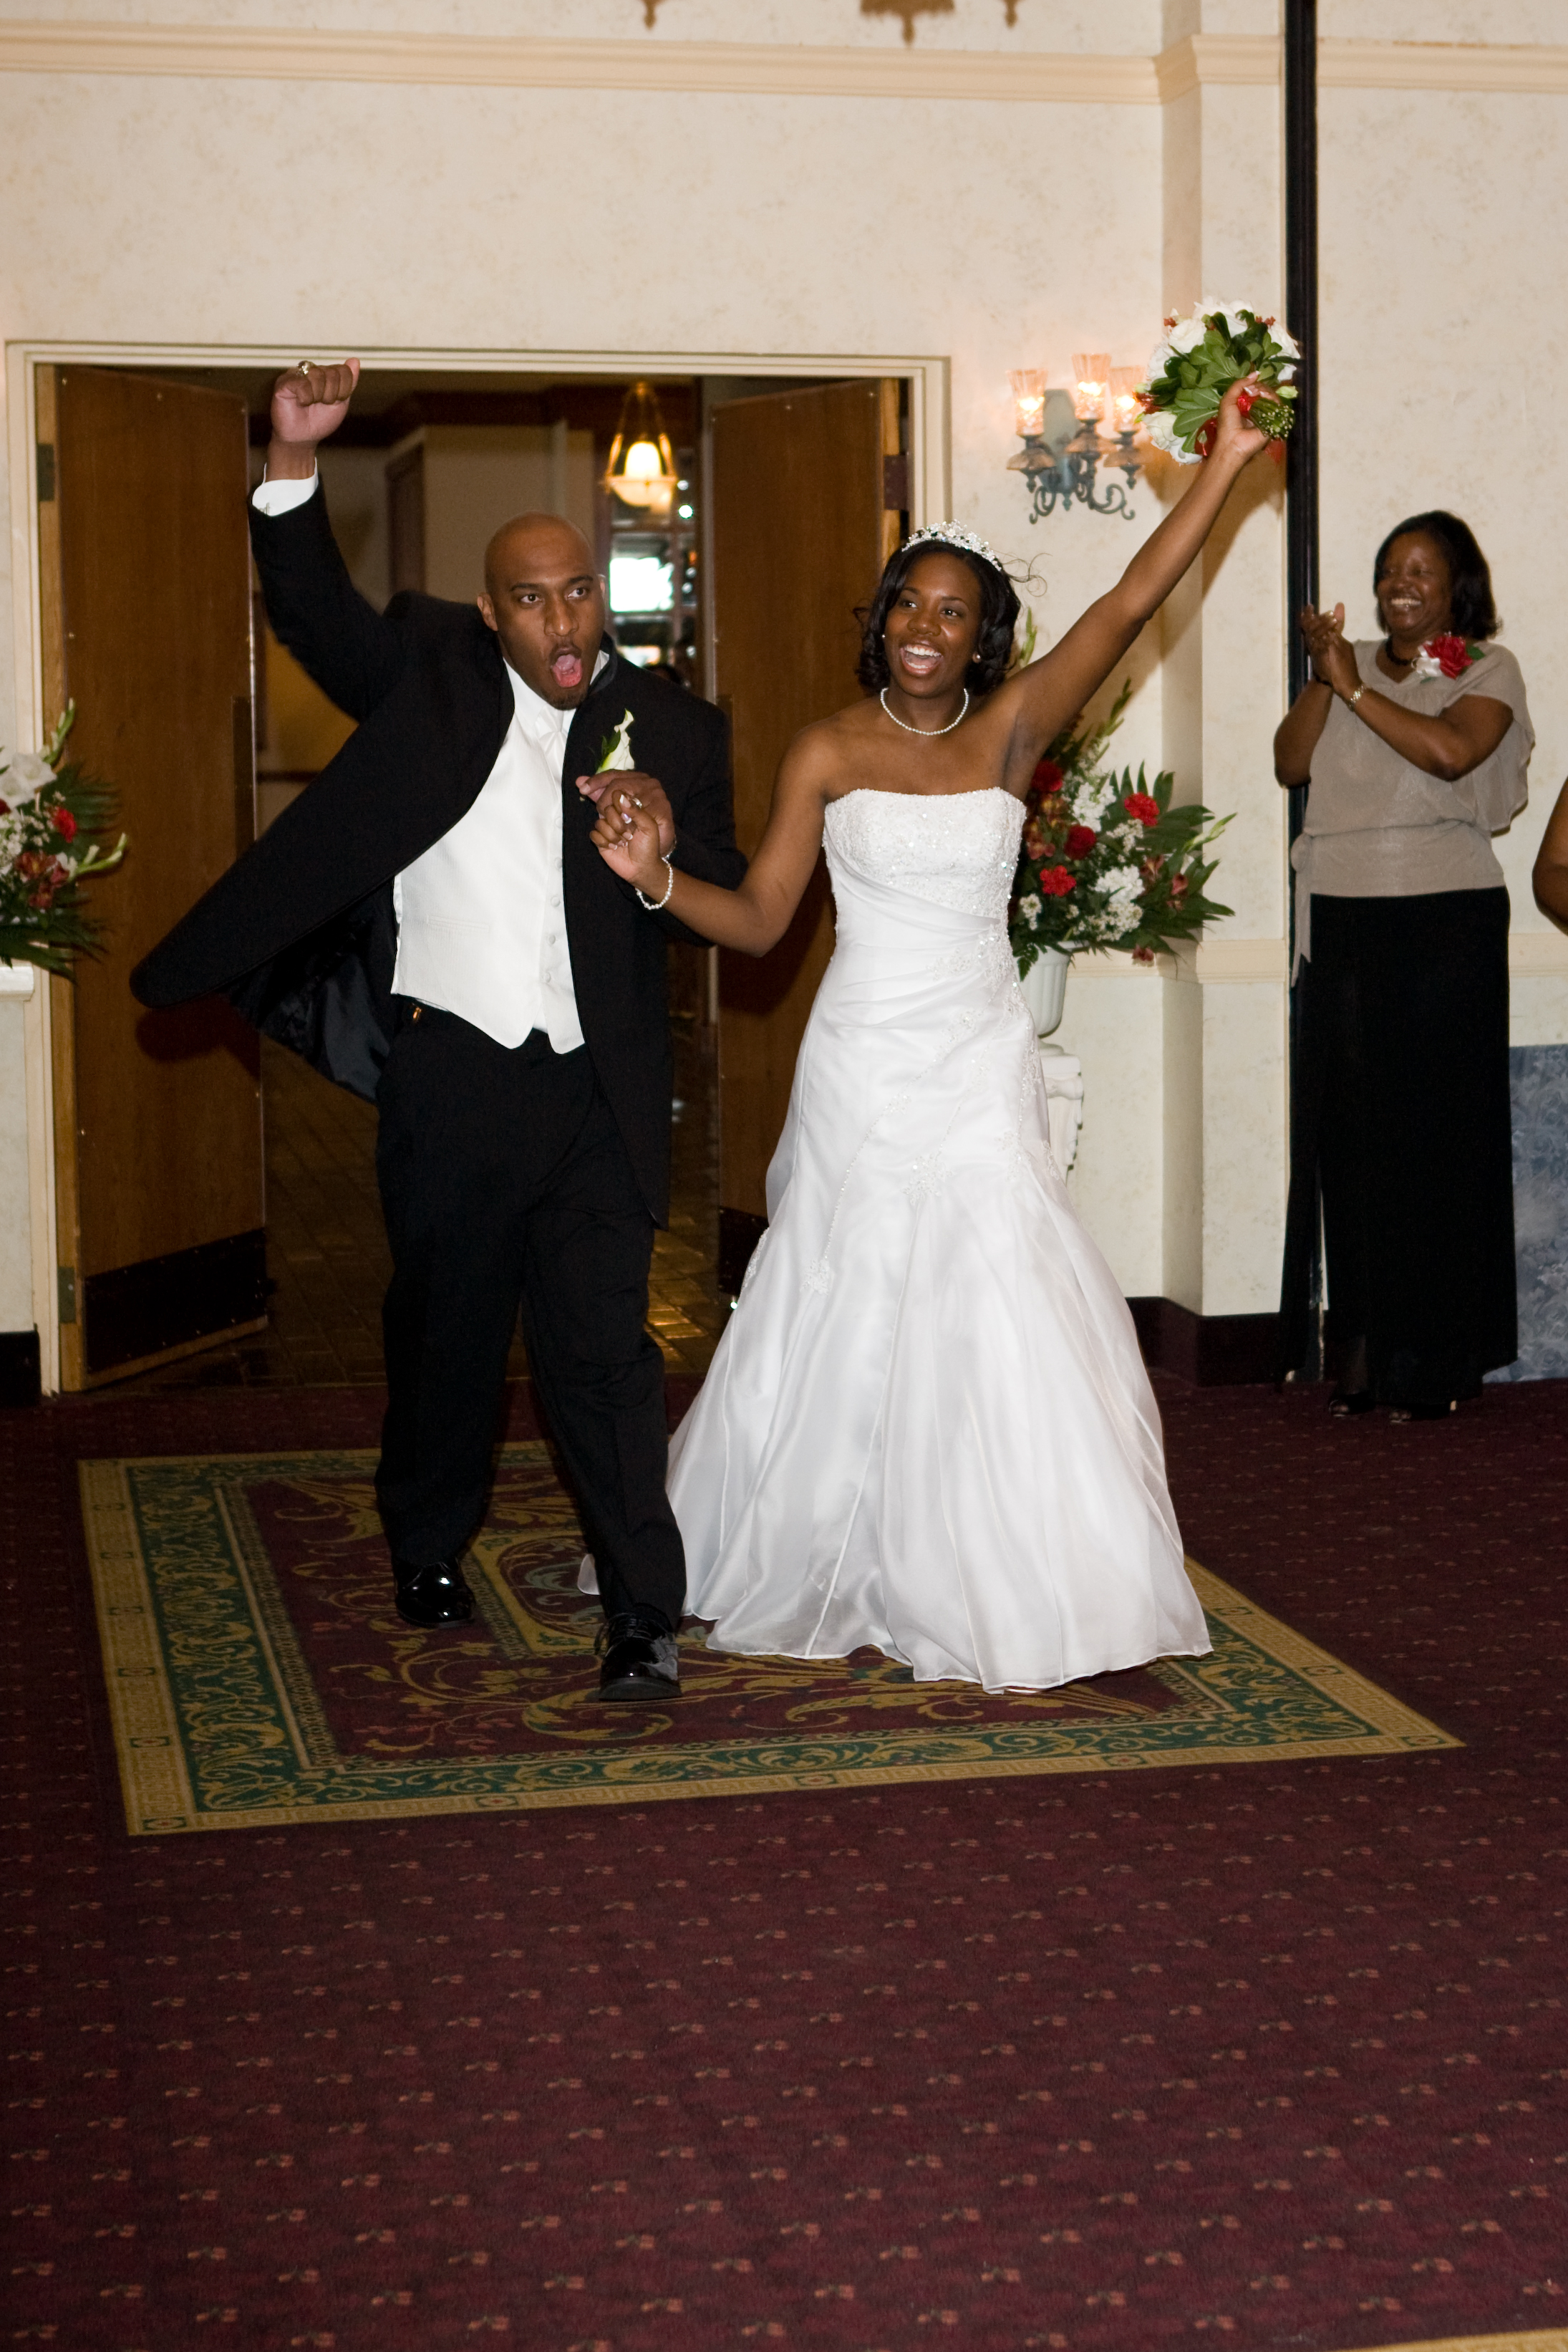 Image of the young couple walking into their reception holding hands and each raising an arm in a celebratory way.